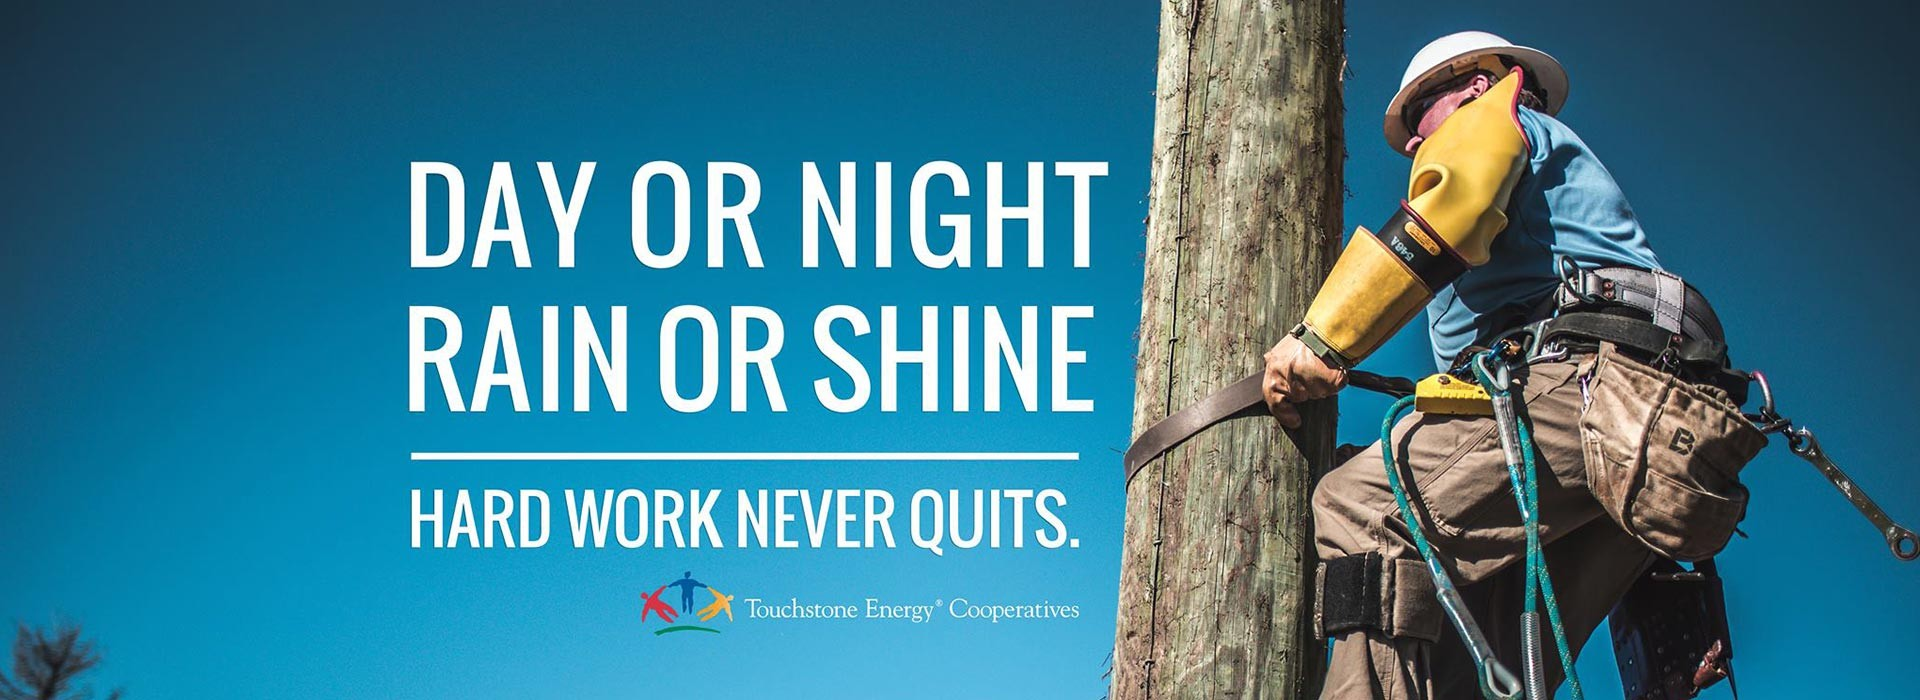 Day or night, rain or shine, hard work never quits. (Man working on power pole)